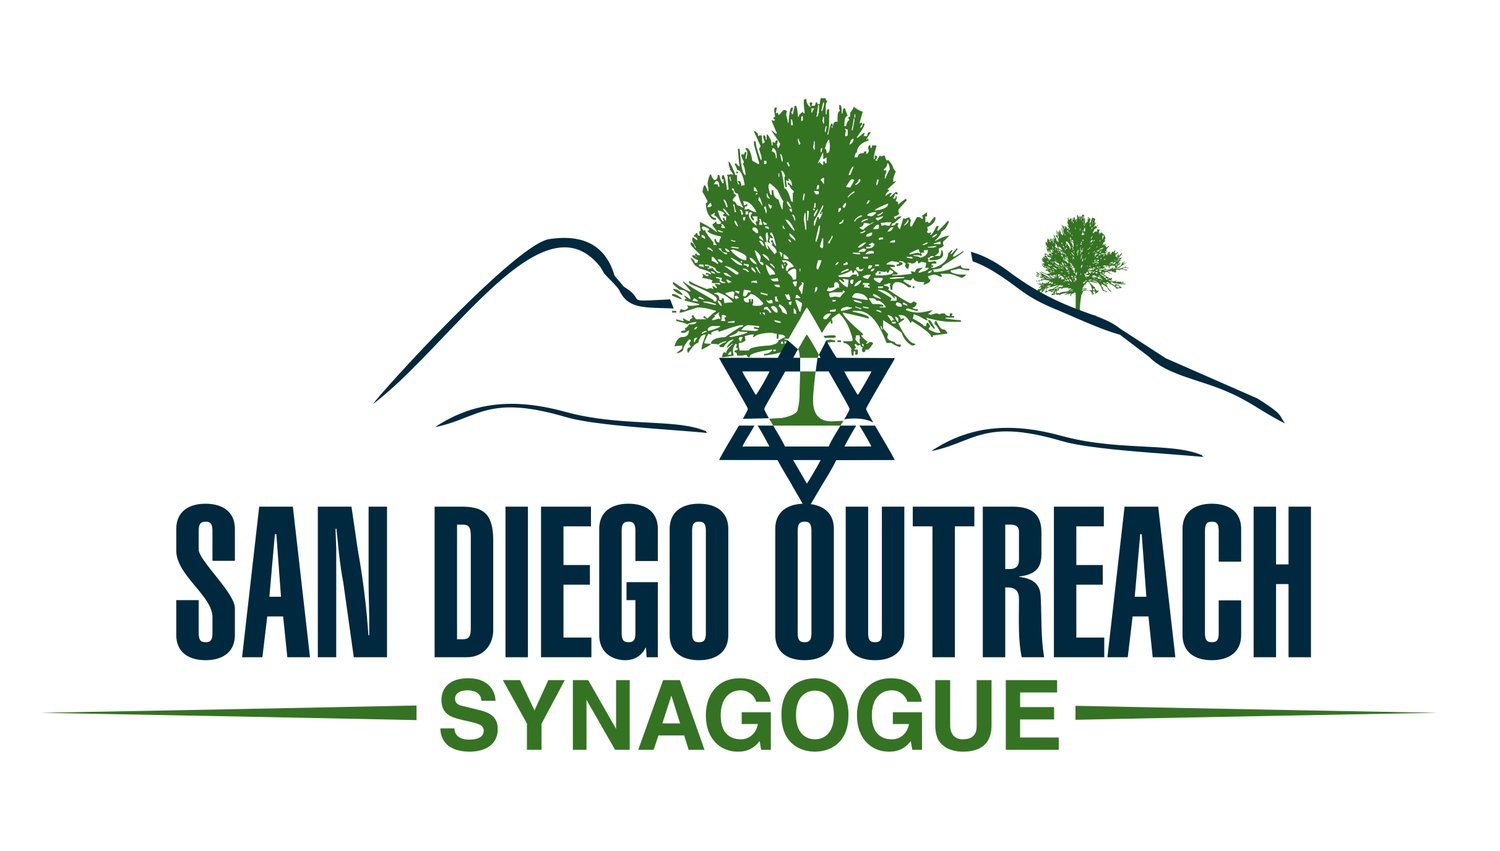 San Diego Outreach Synagogue